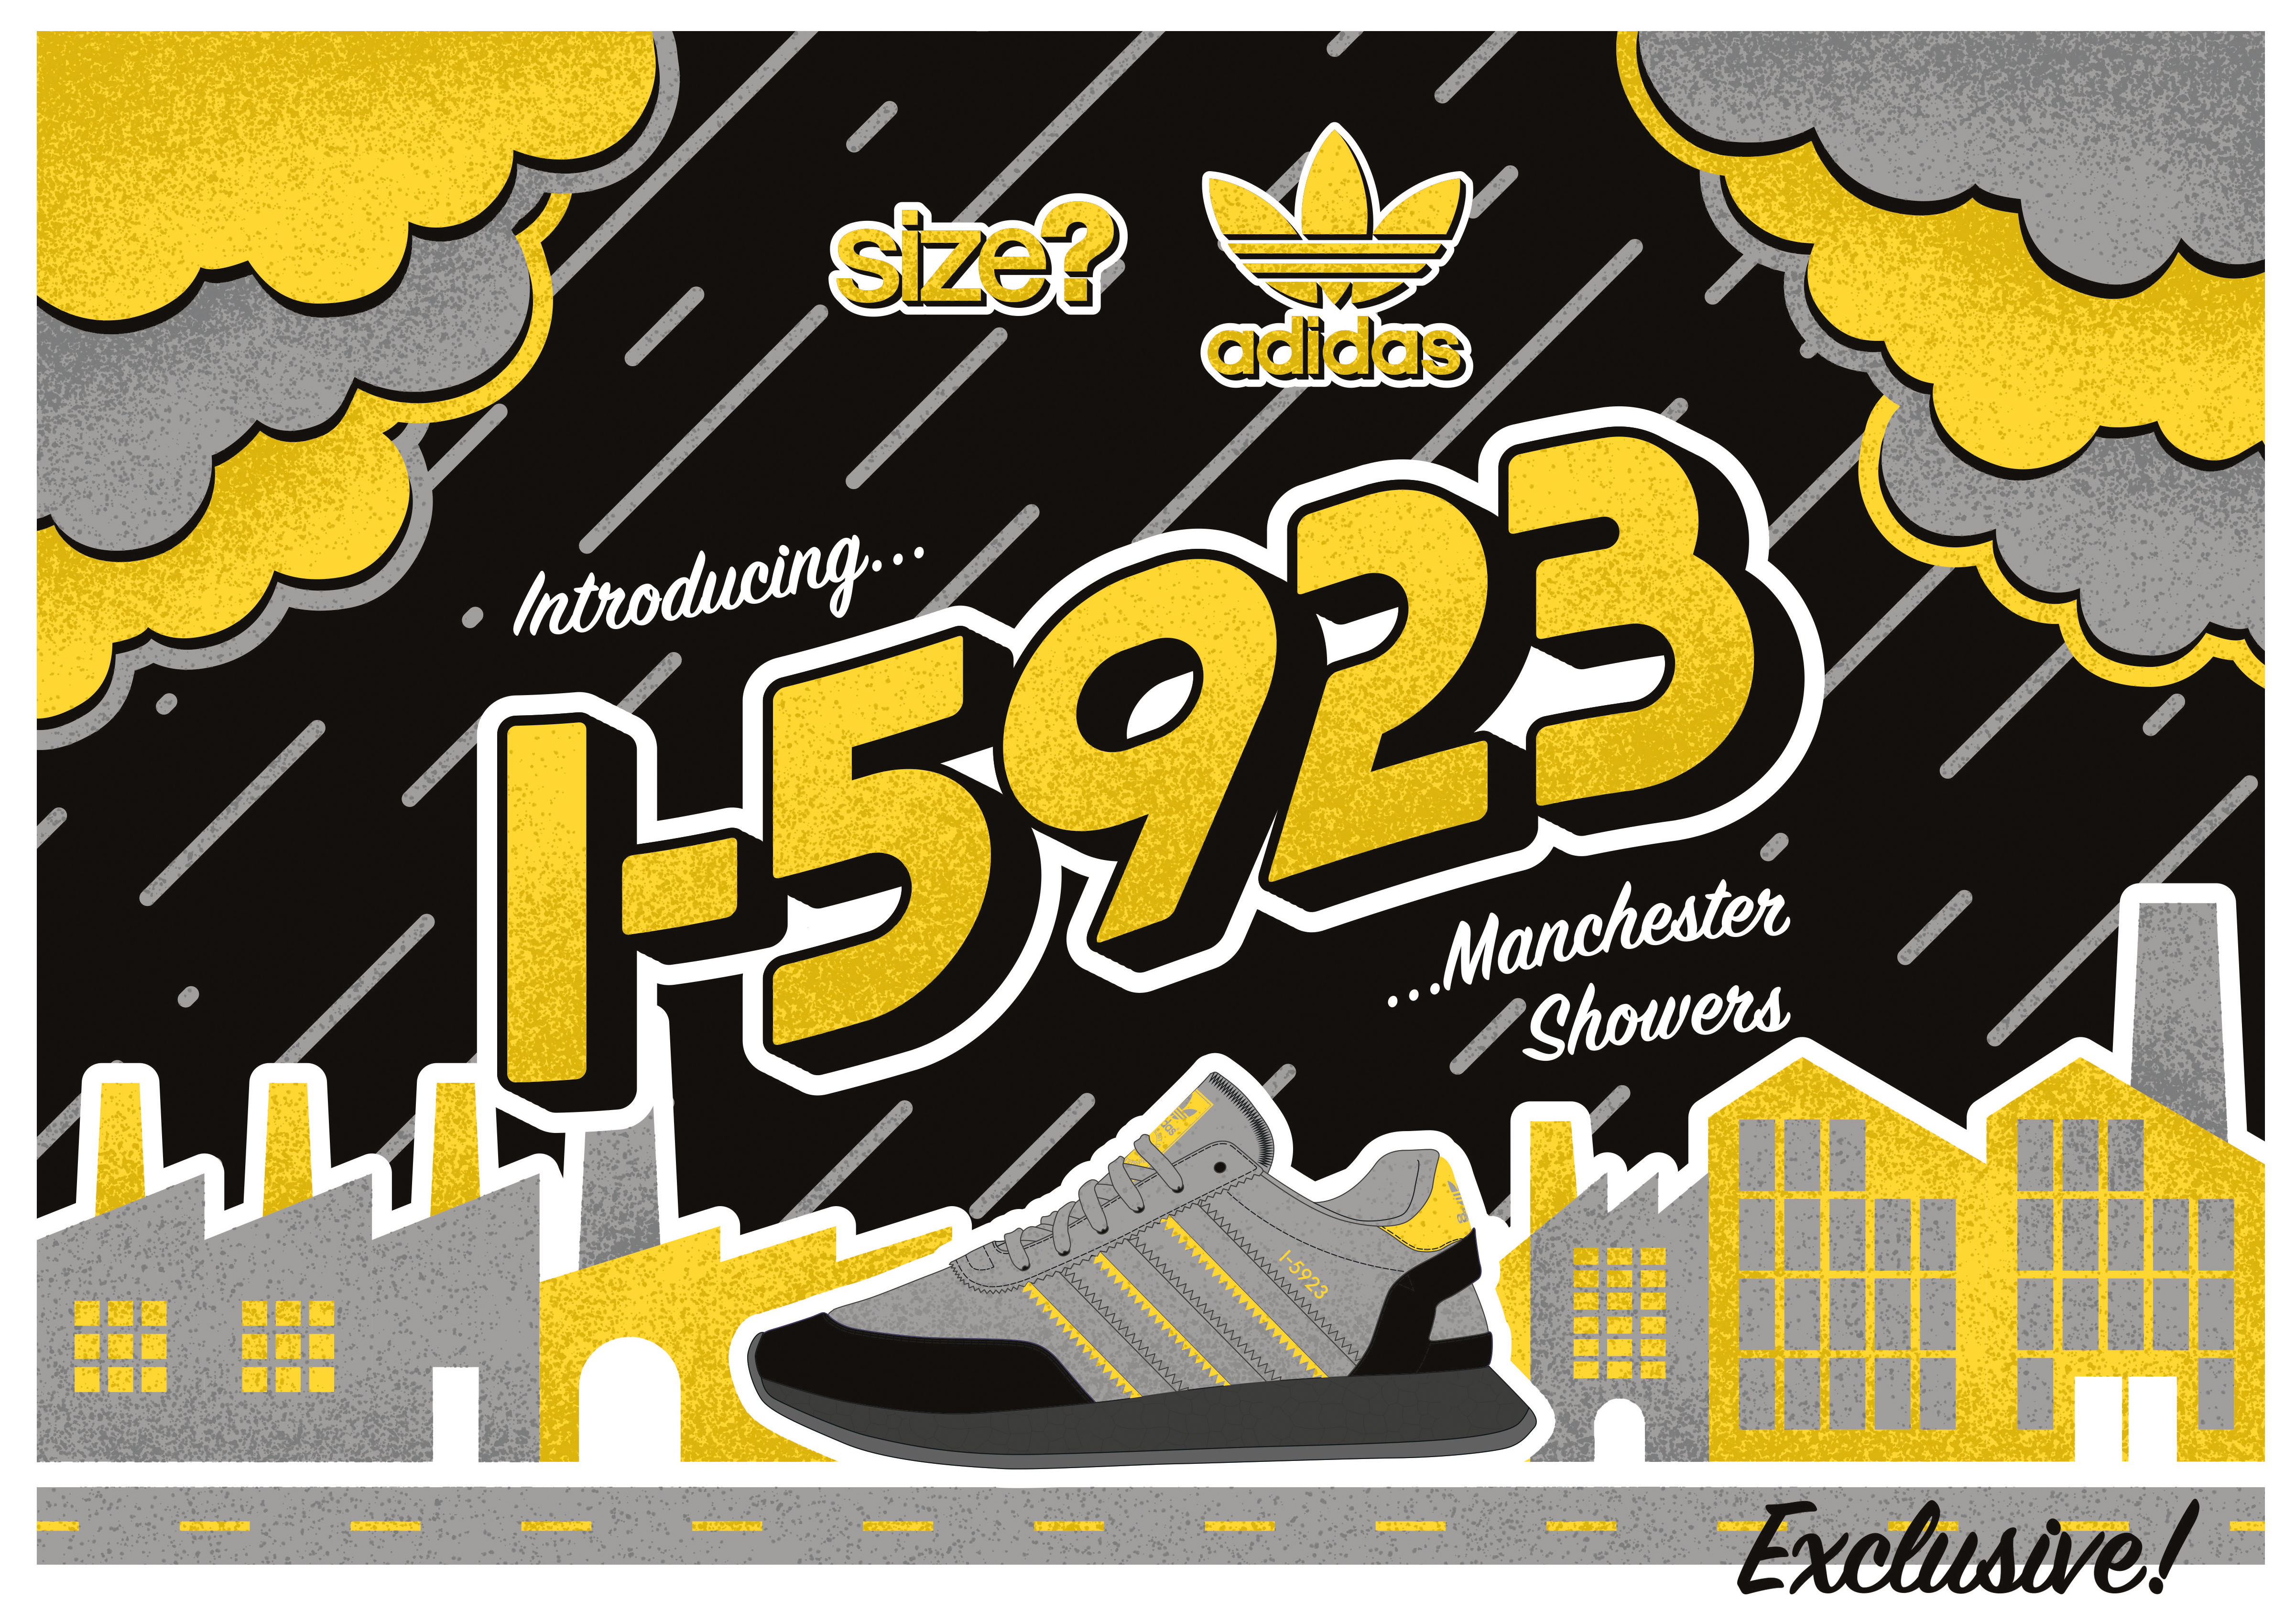 adidas Originals I-5923 'Manchester Showers' – size? Exclusive